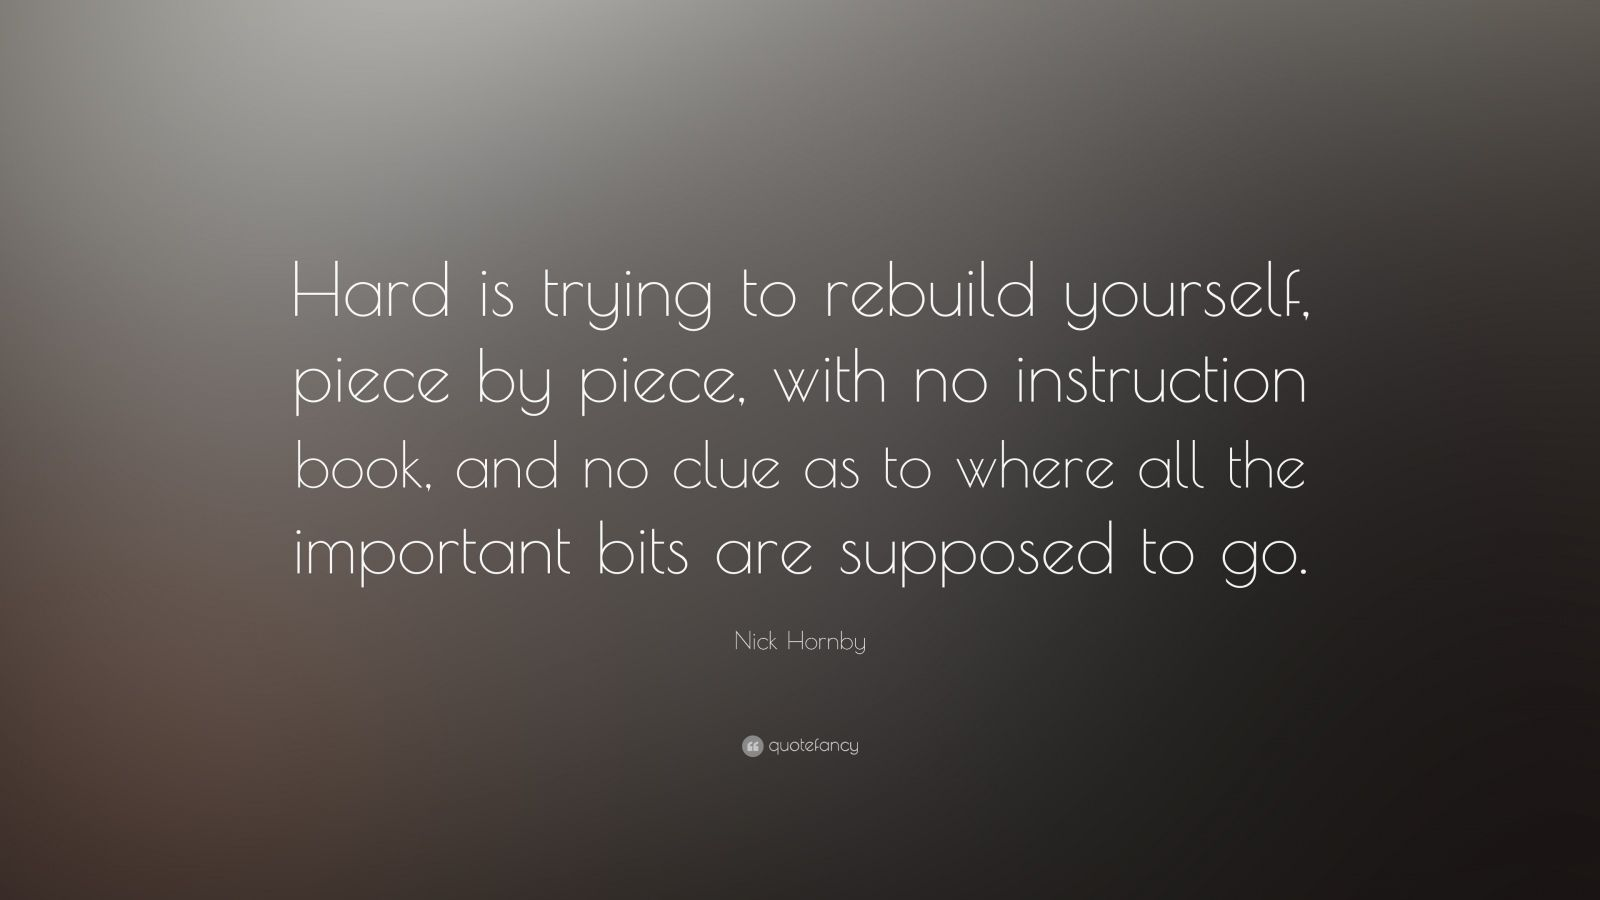 William Shakespeare Love Quotes Wallpaper Nick Hornby Quote Hard Is Trying To Rebuild Yourself